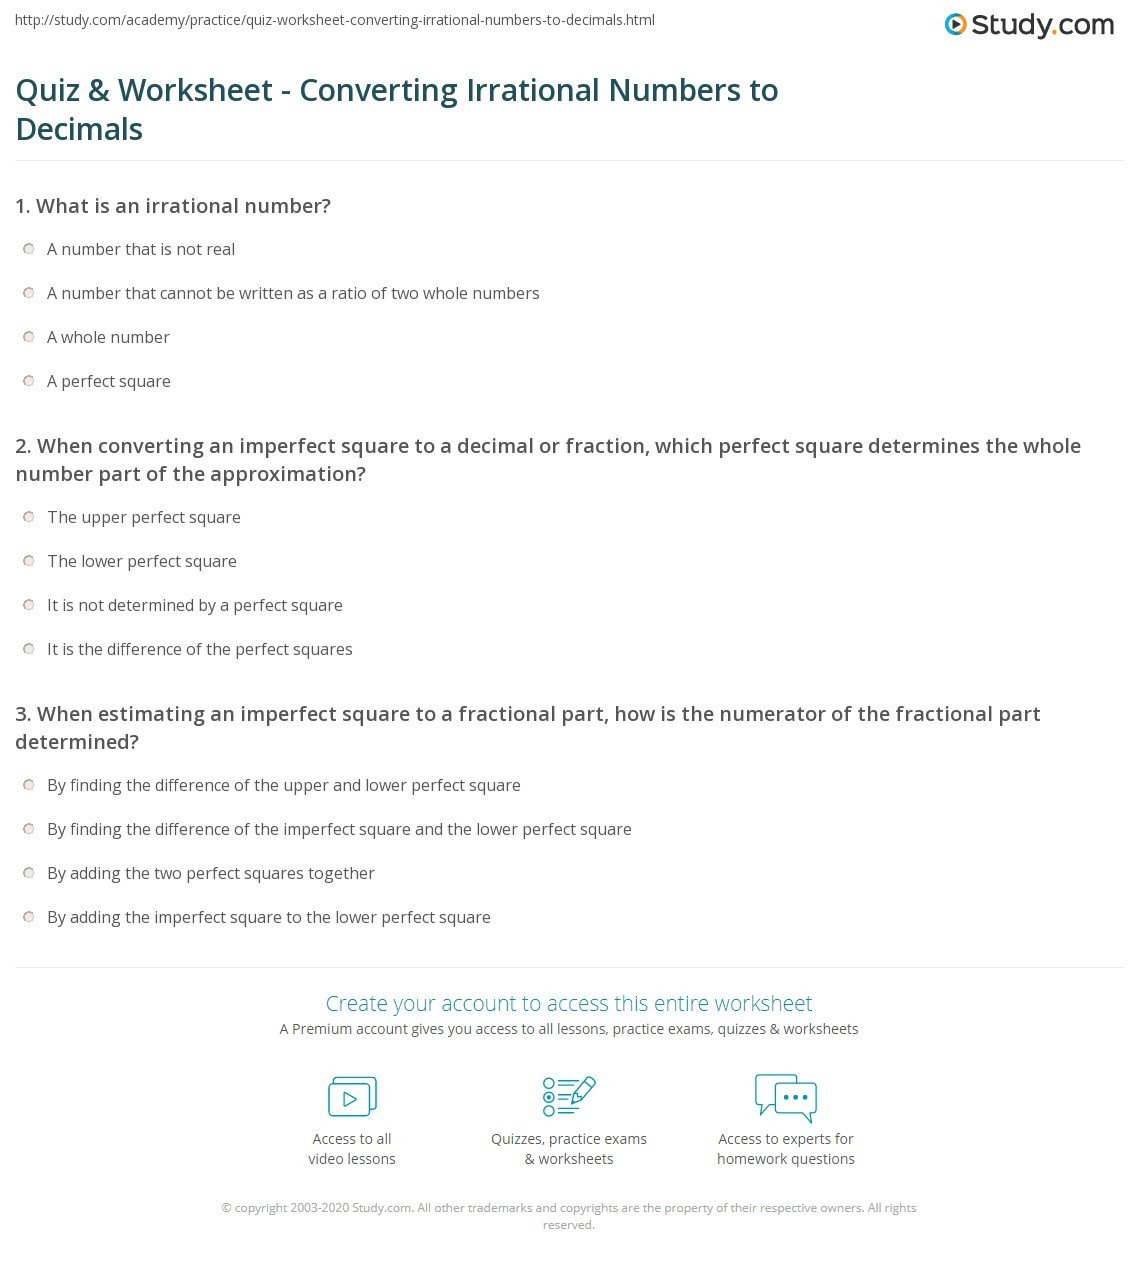 Approximating Irrational Numbers Worksheet Quiz & Worksheet Converting Irrational Numbers to Decimals